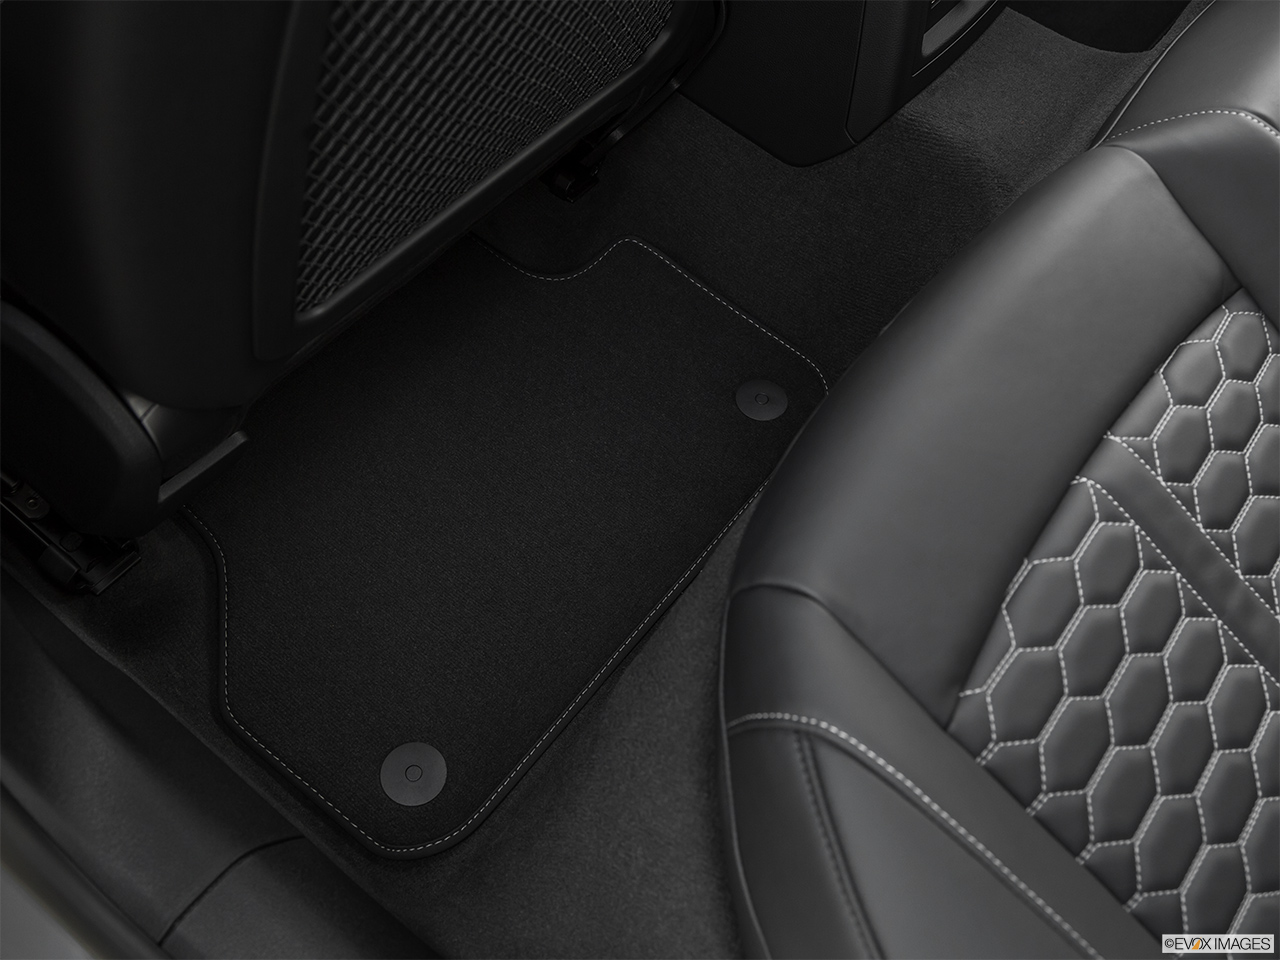 2019 Audi RS 5 Sportback 2.9 TFSI Rear driver's side floor mat. Mid-seat level from outside looking in.